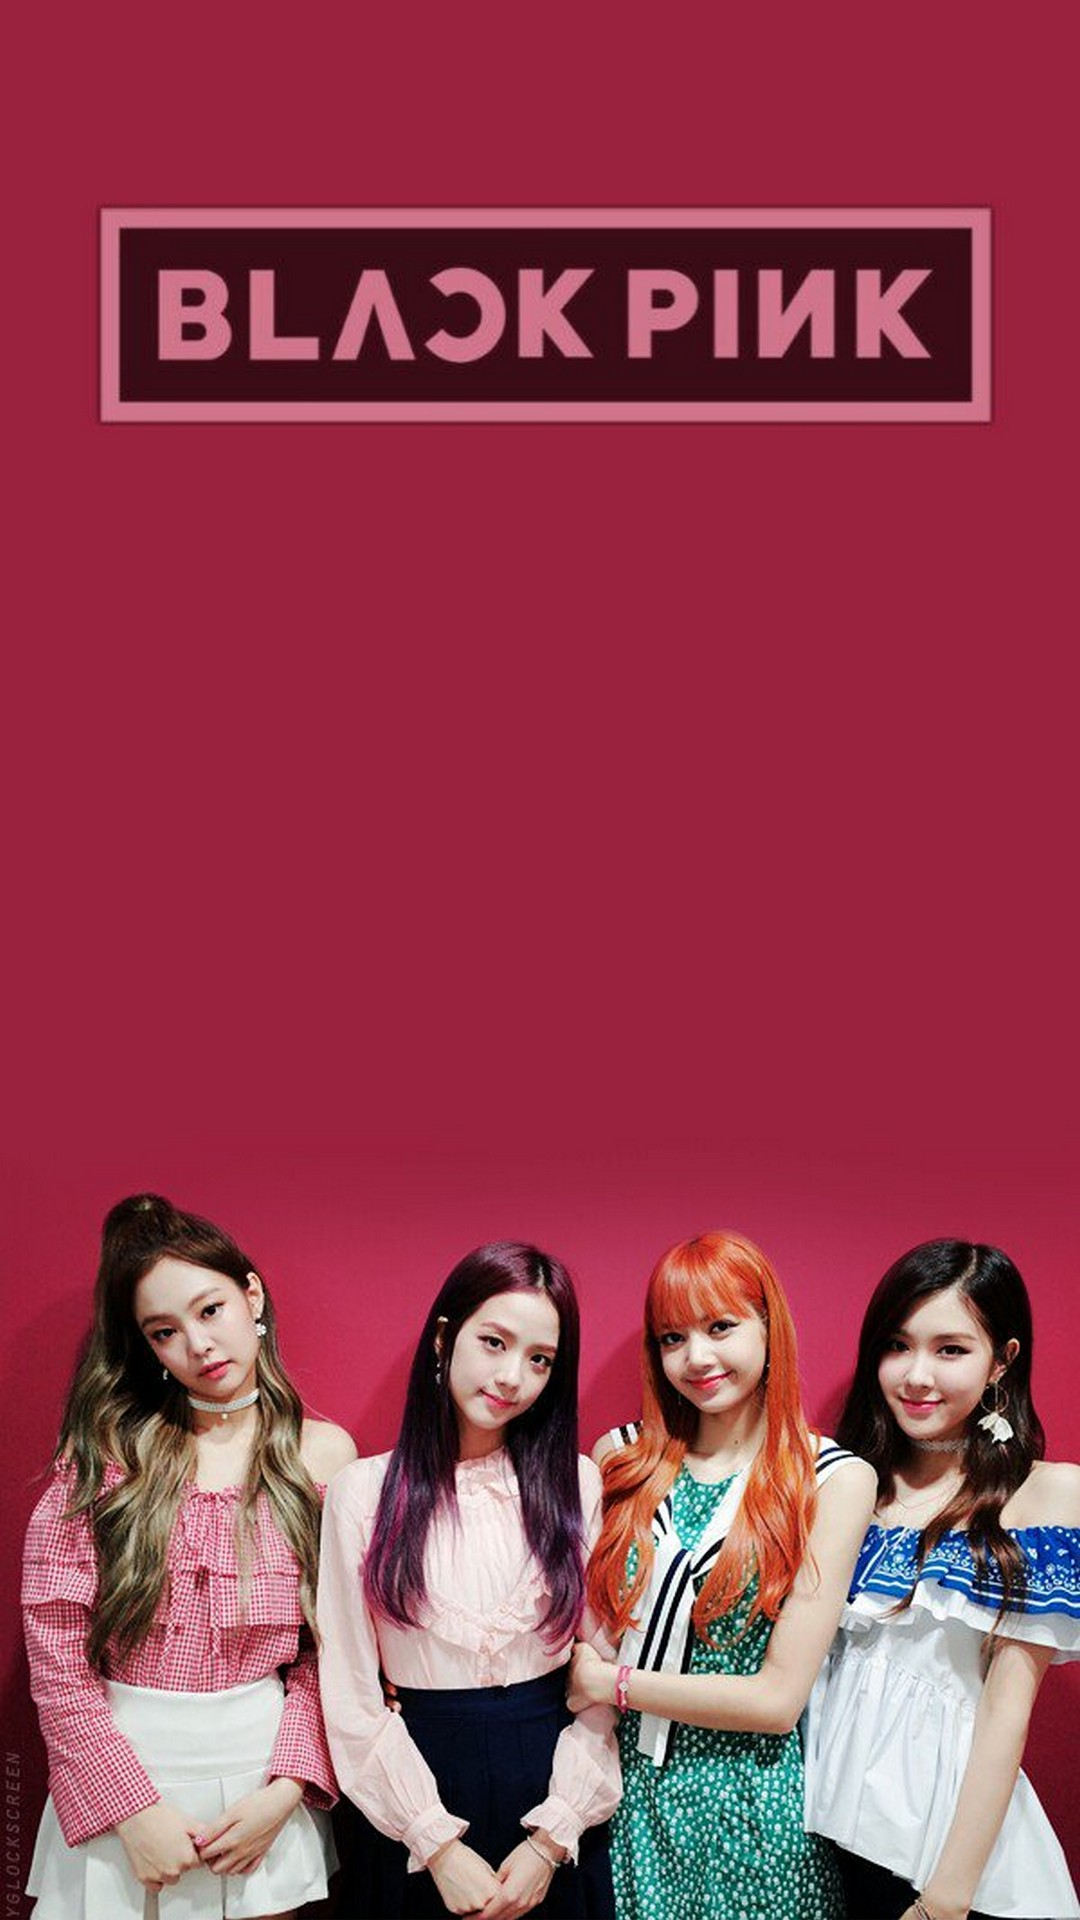 Android Wallpaper Blackpink with high-resolution 1080x1920 pixel. You can use this wallpaper for your Android backgrounds, Tablet, Samsung Screensavers, Mobile Phone Lock Screen and another Smartphones device